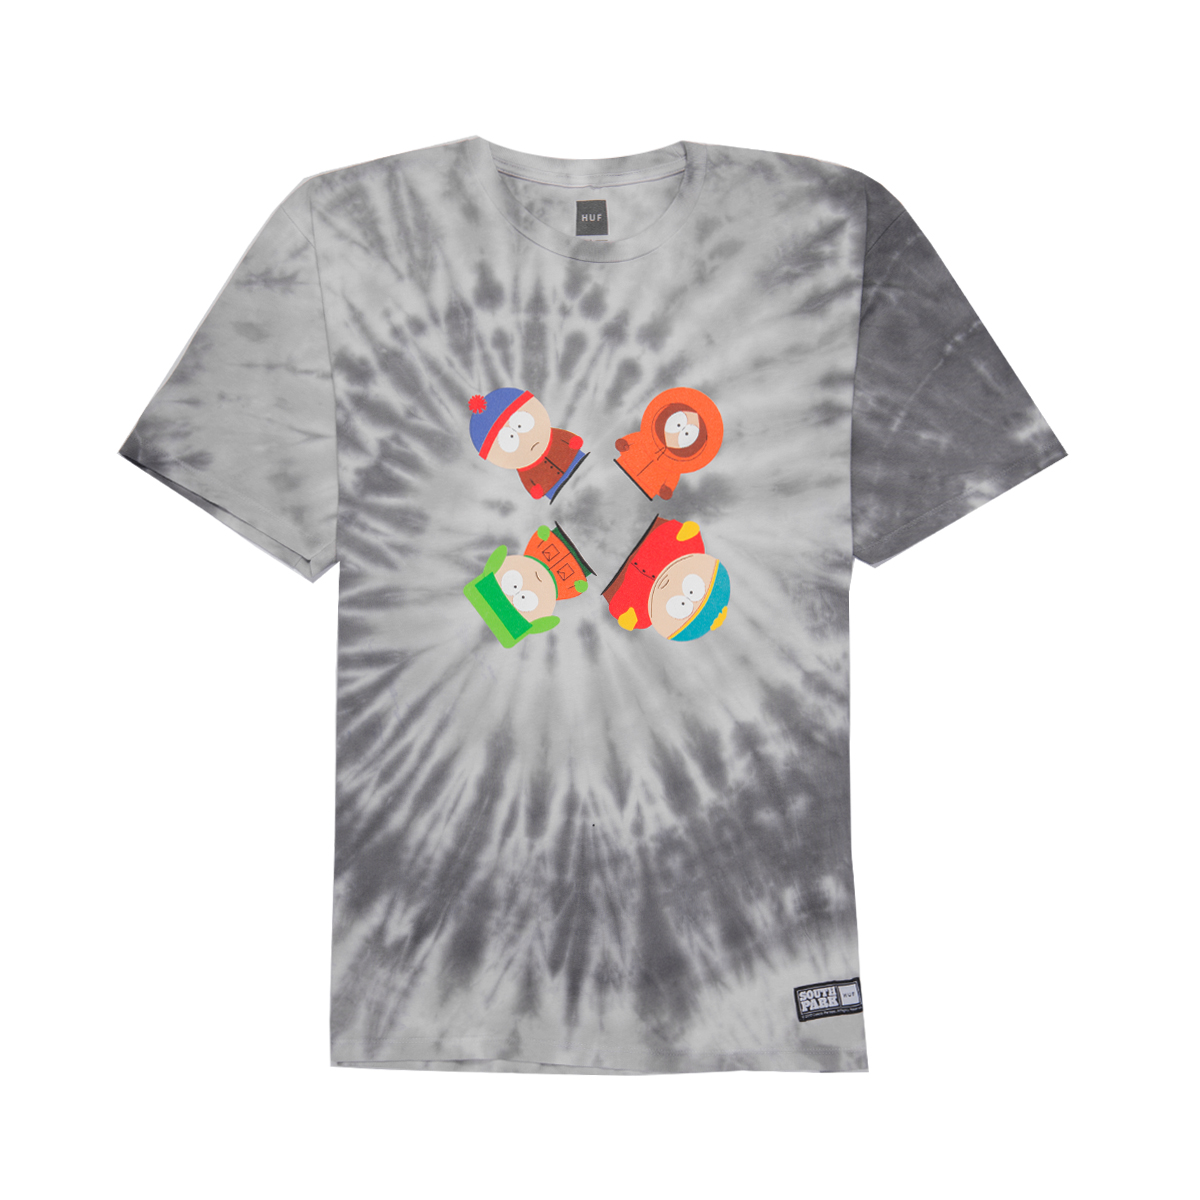 Koszulka HUF x South Park Trippy Tie Dye Black